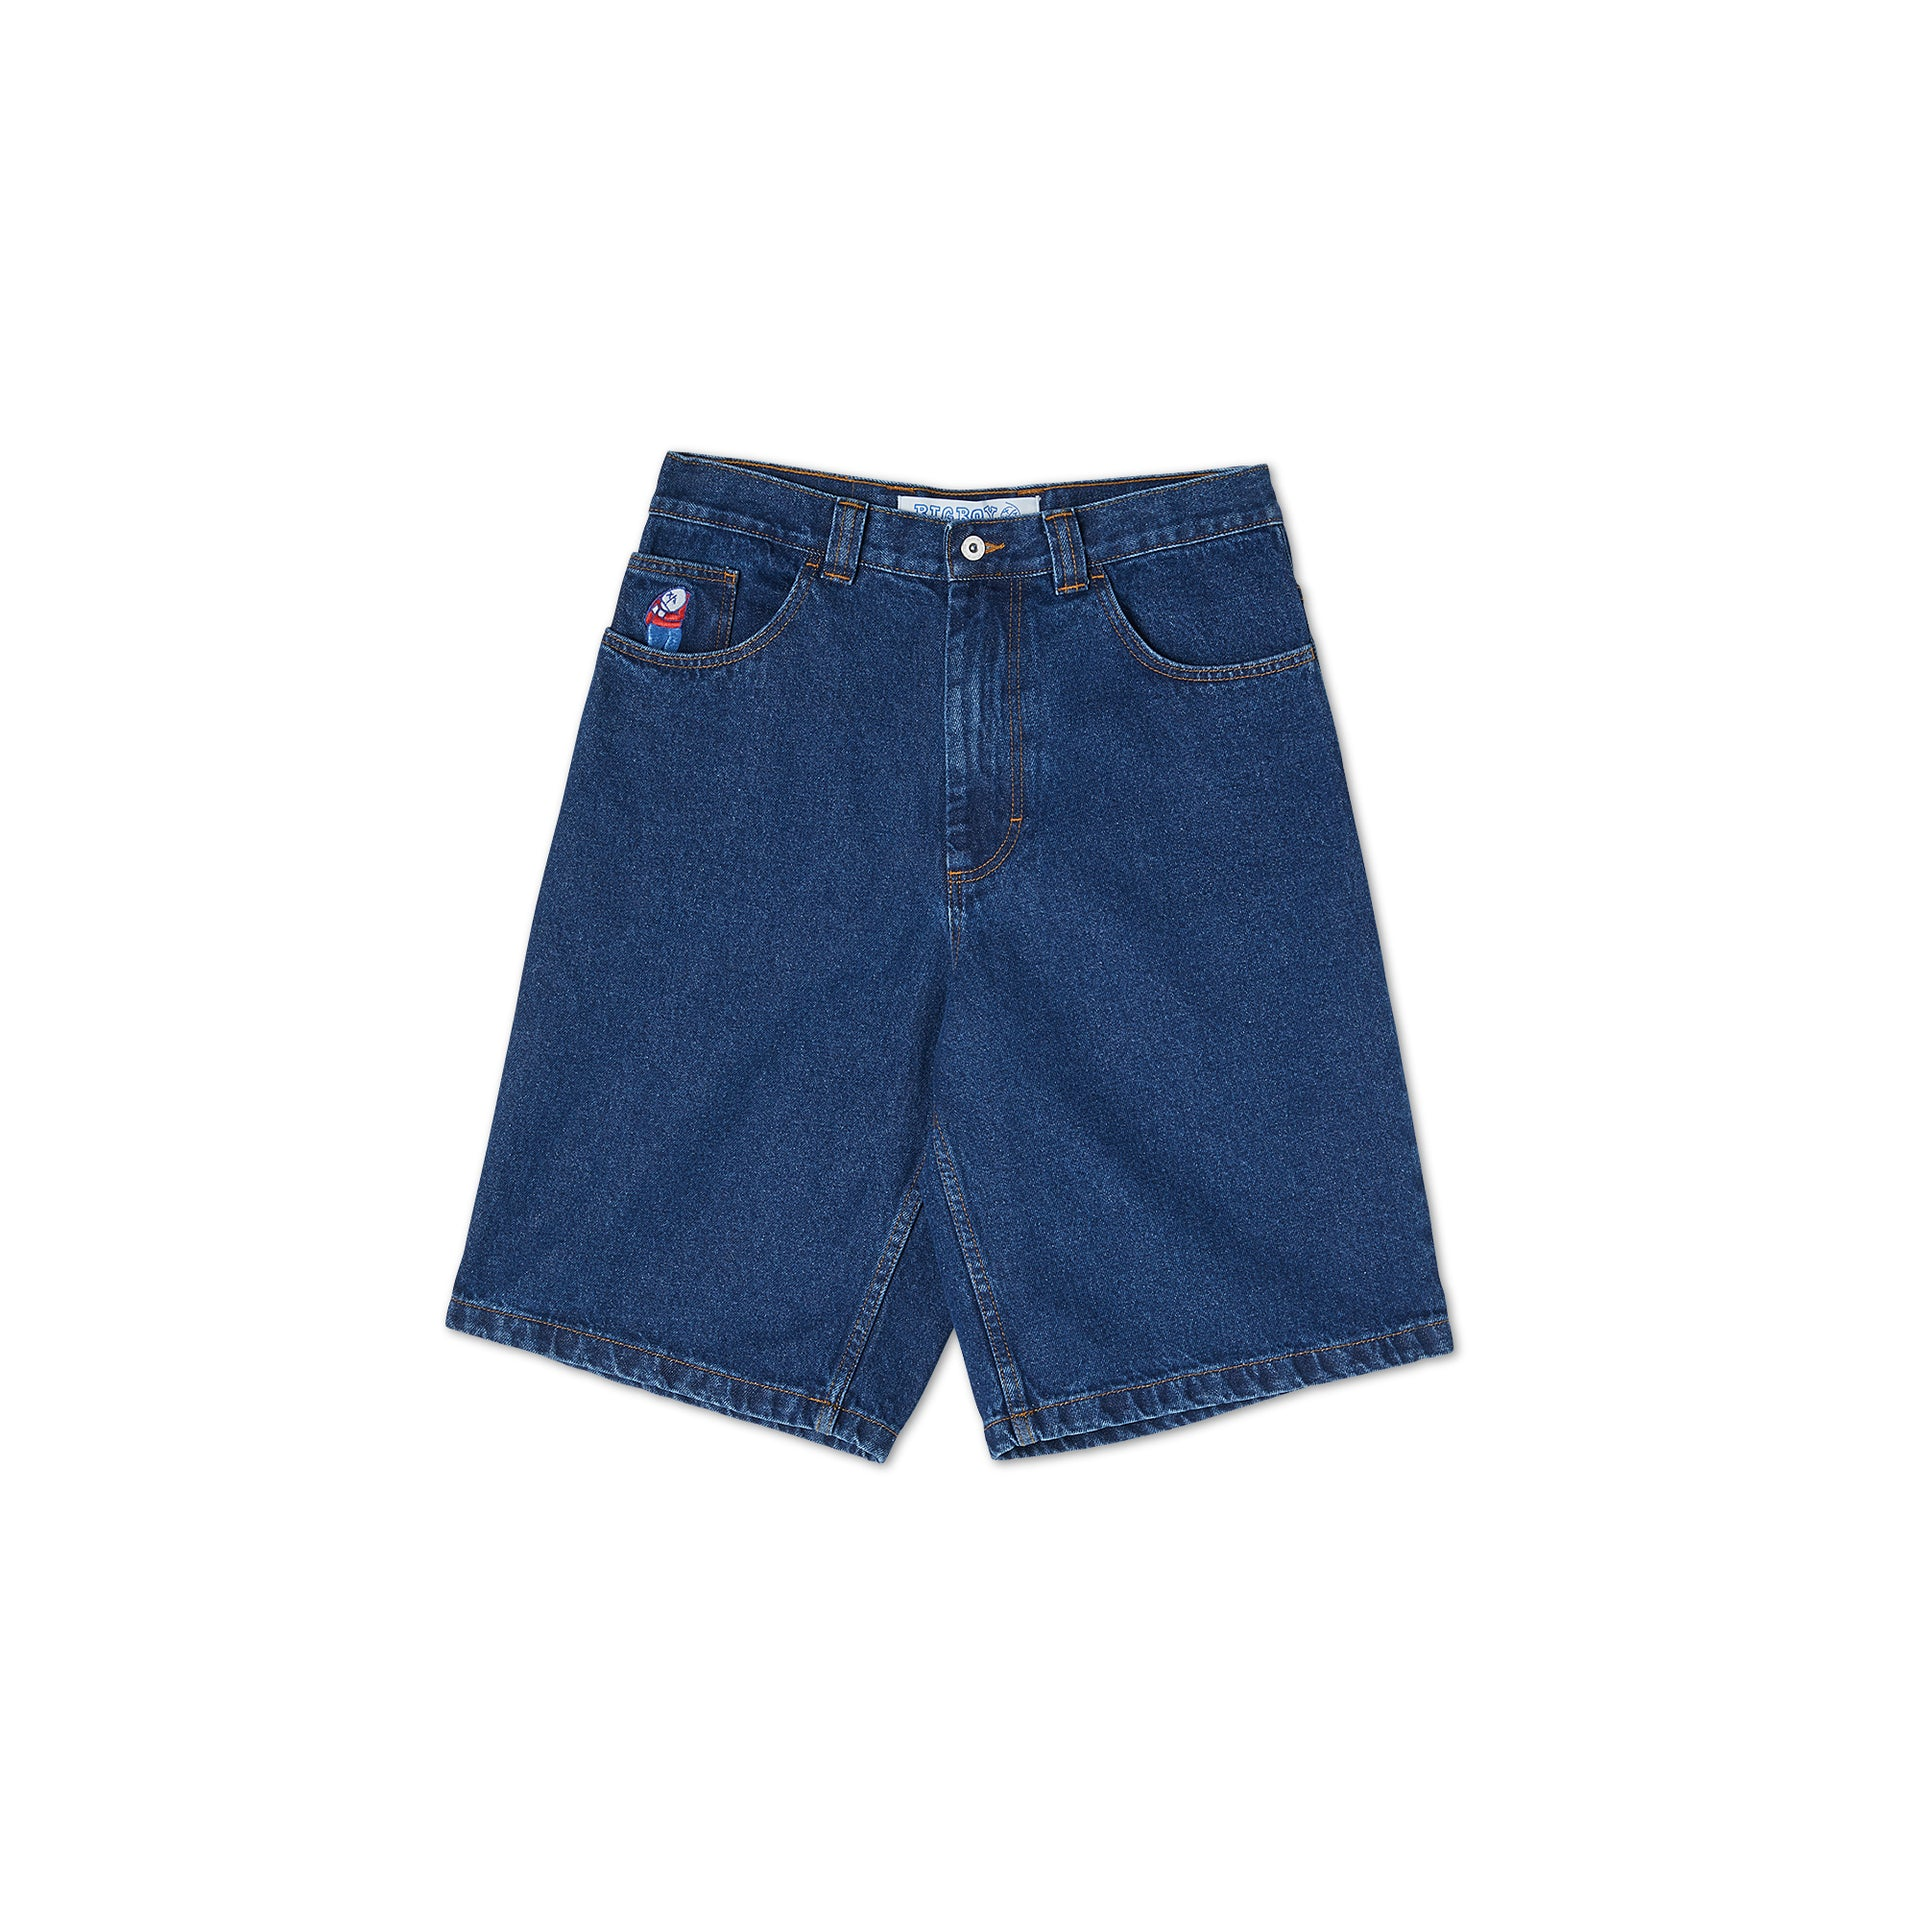 BIG BOY SHORTS DARK BLUE